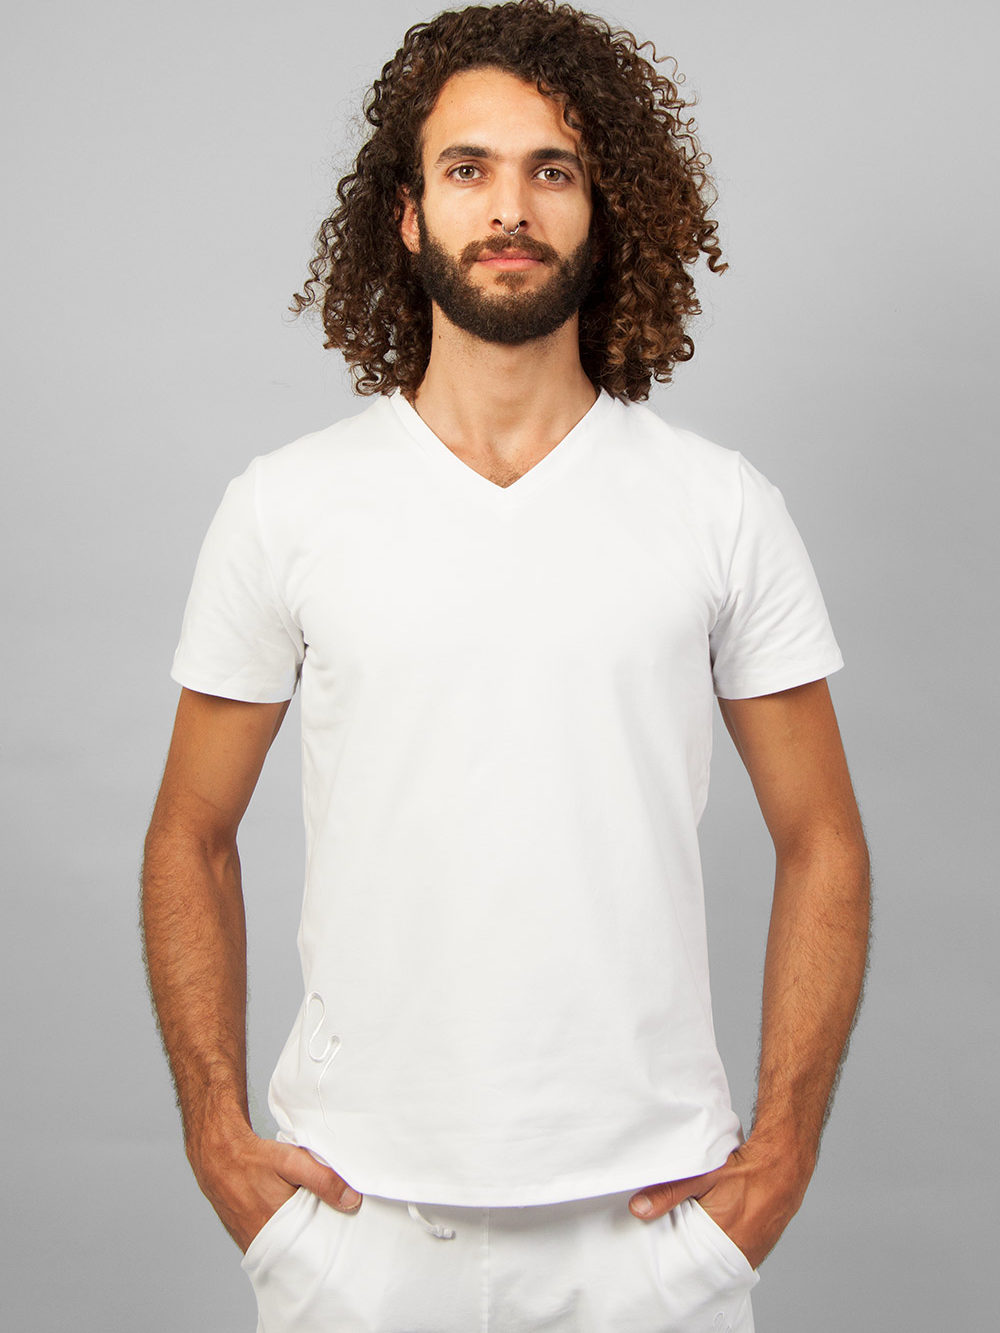 Breath ofFire yoga man clothes organic cotton